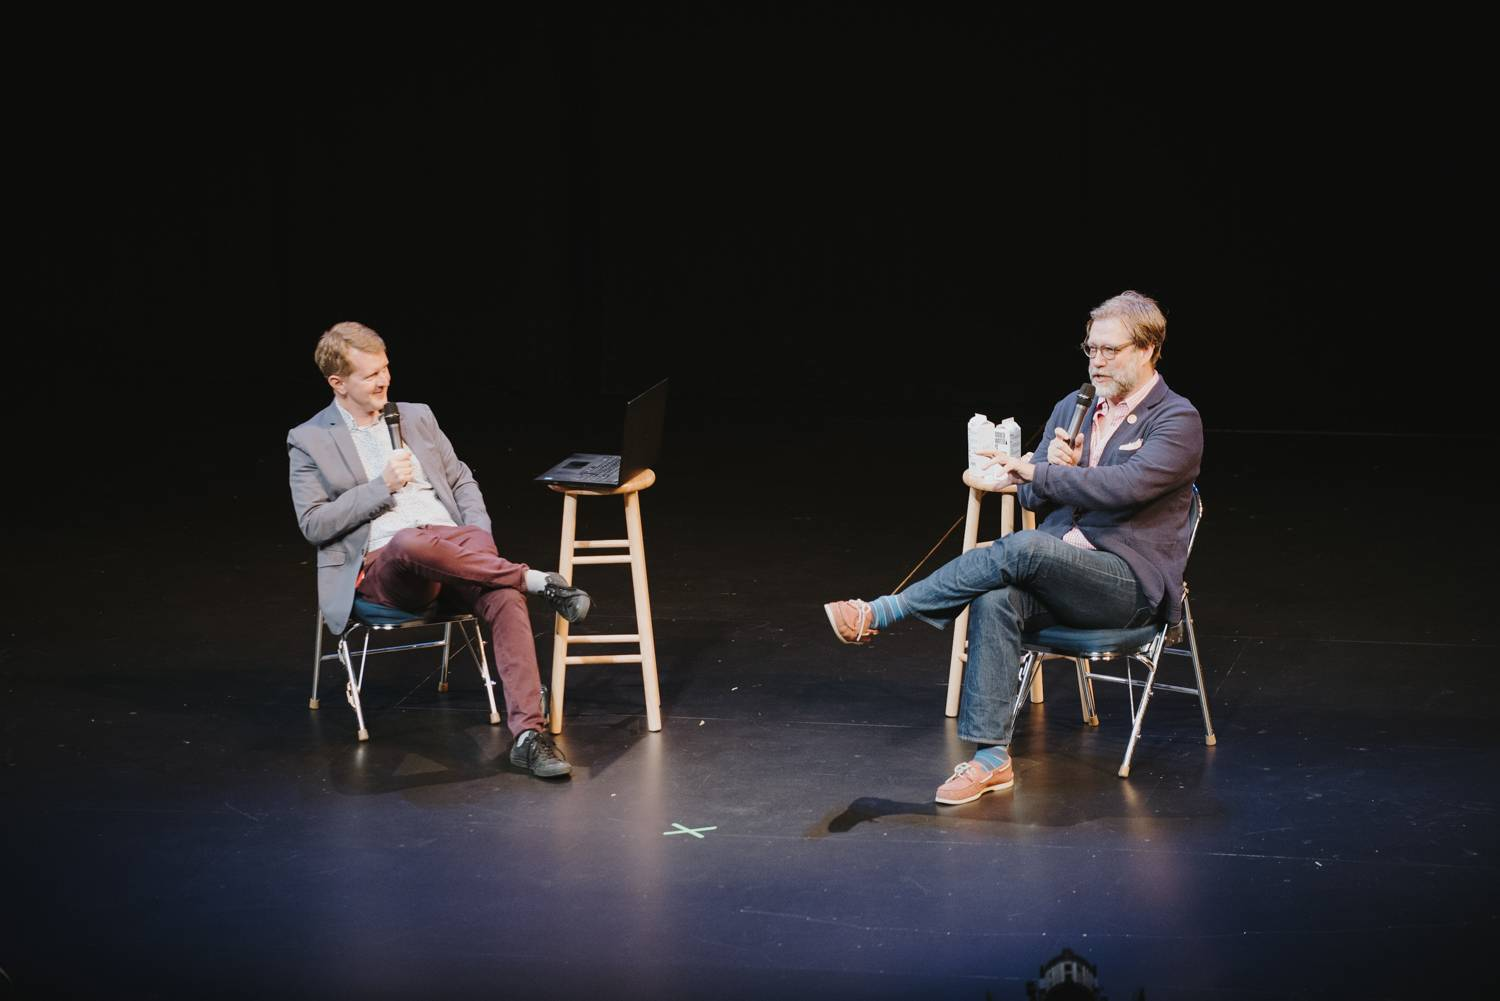 Ken Jennings and John Roderick at the Bumbershoot Music Festival 2018 - Day 2. Sept 1 2018. Pavel Boiko photo.